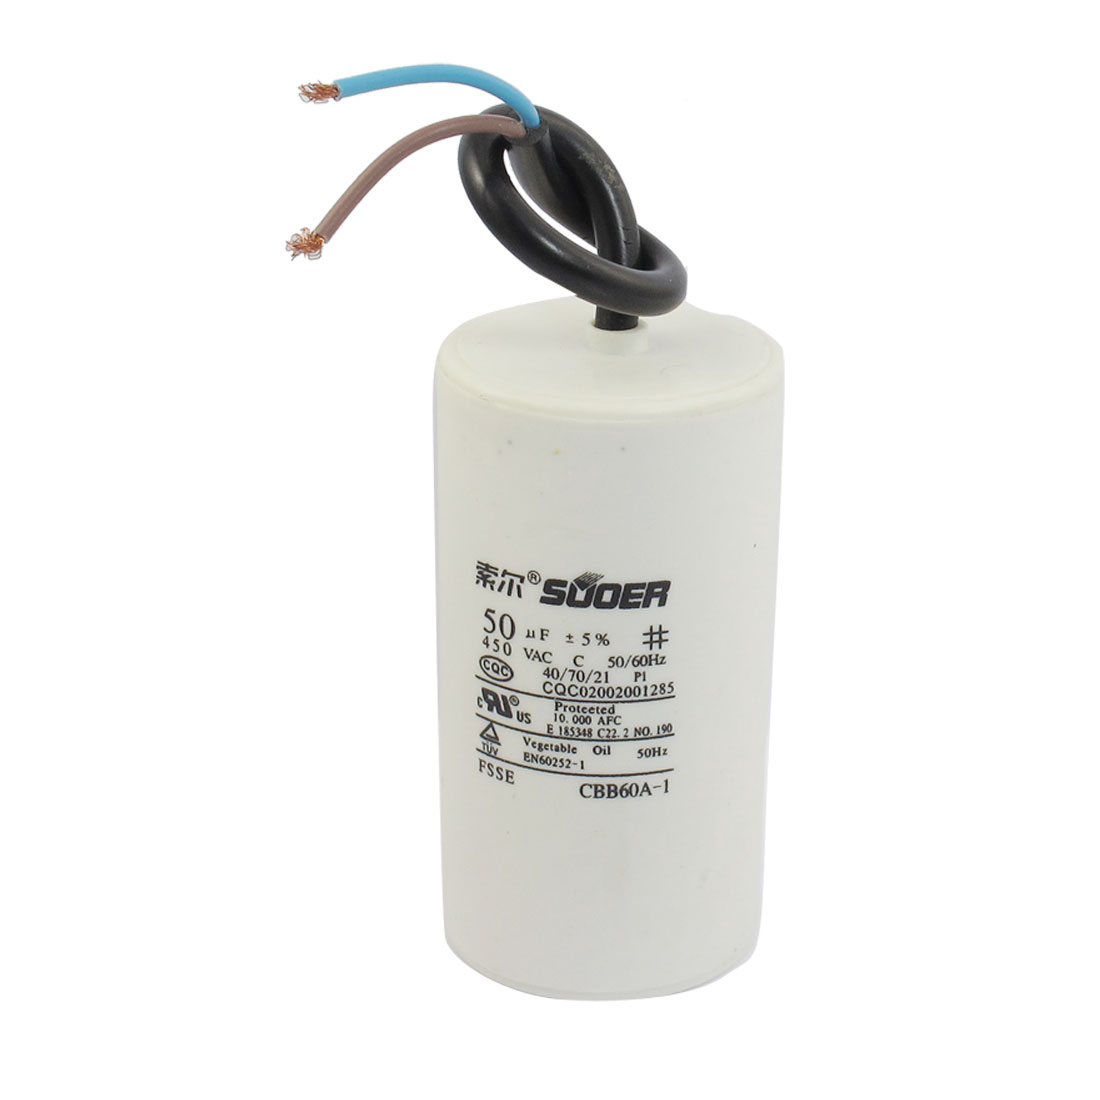 AC 450V 50/60Hz 50uF Polypropylene Film Motor Run Capacitor